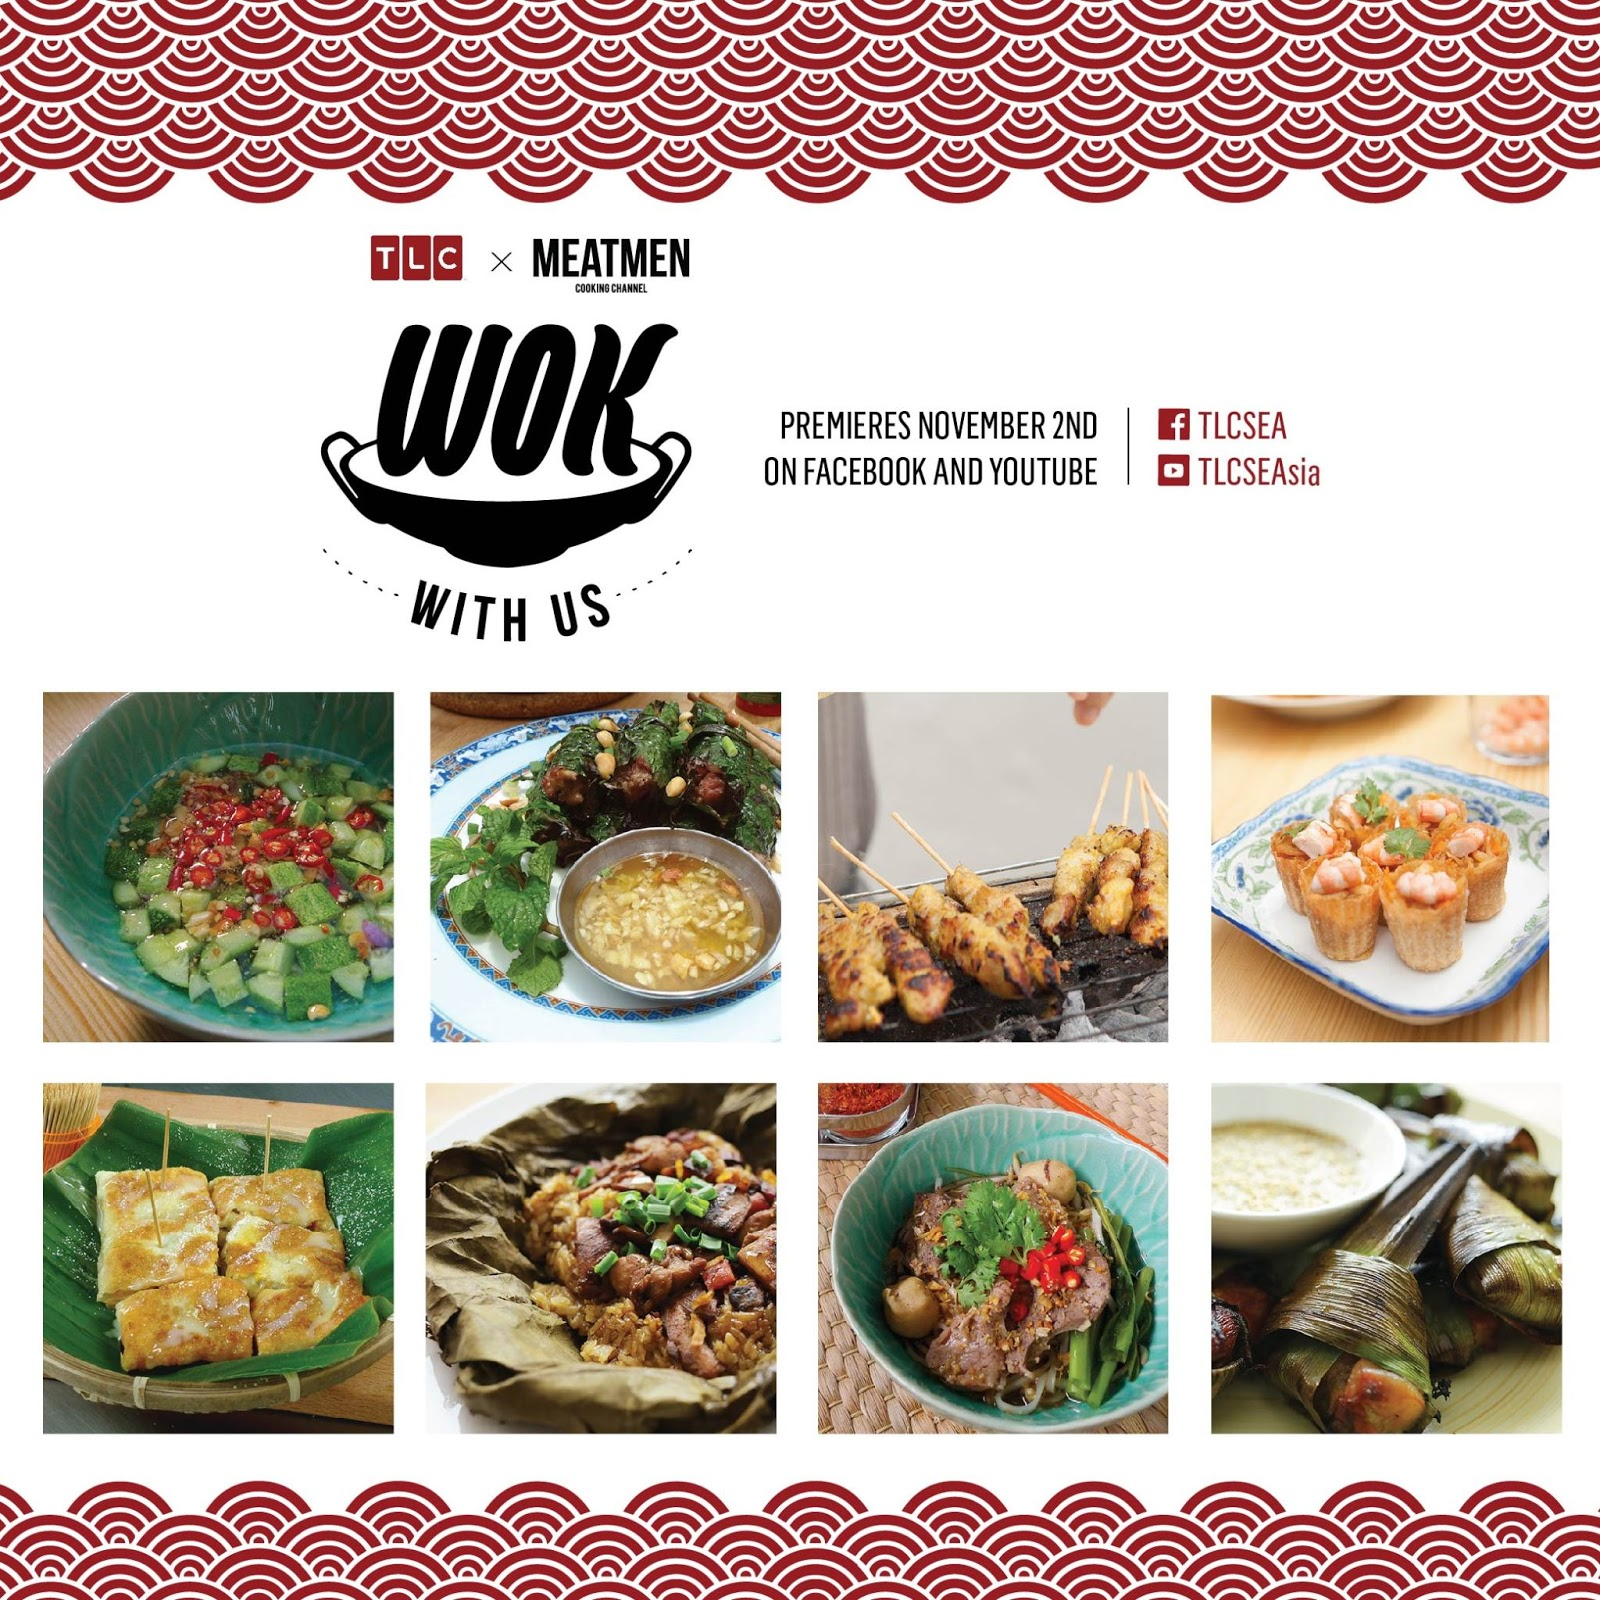 Wok with us to bring us the best of southeast asian food thehiveia asia to find out the mystery man behind the 24 episode series which is set to premiere online on tlcs facebook and youtube pages on 2 november 2016 forumfinder Images